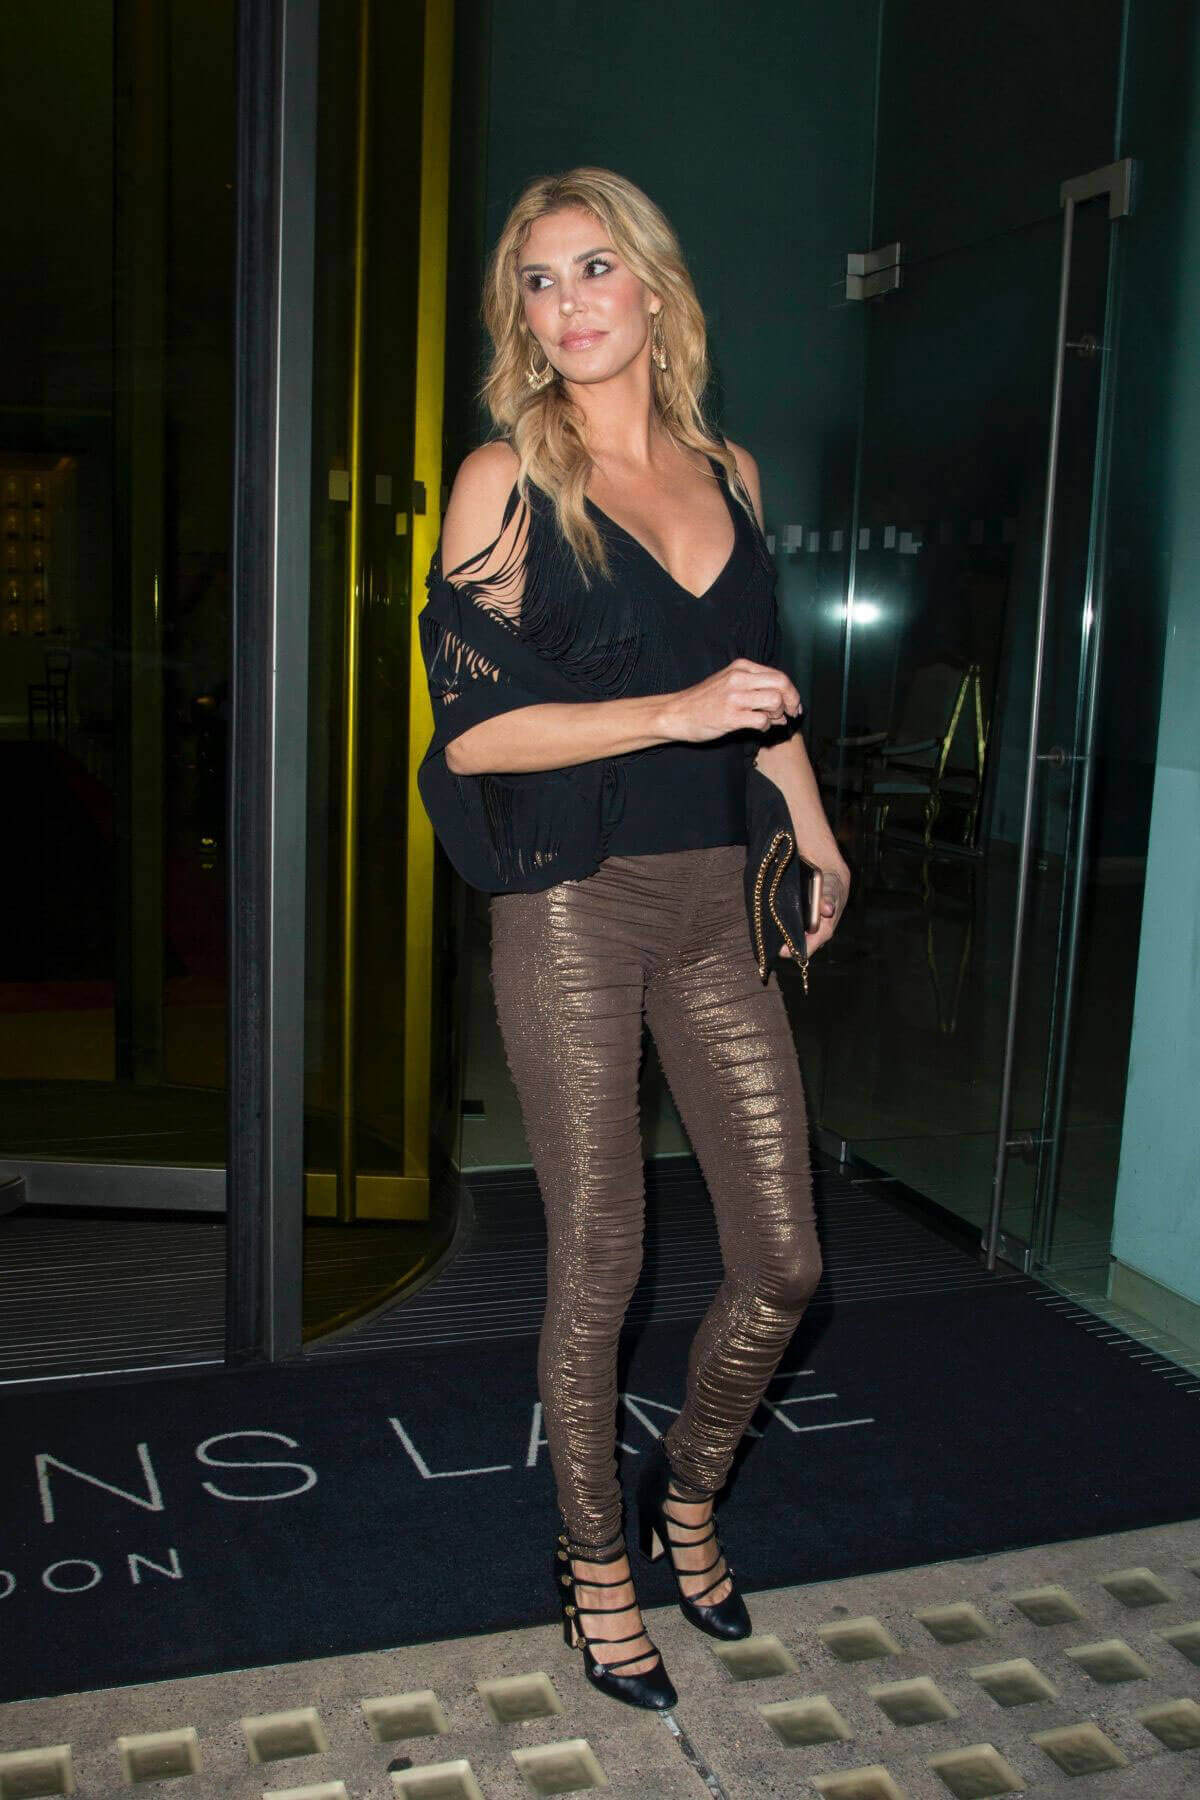 Brandi Glanville Stills Night Out in London Photos